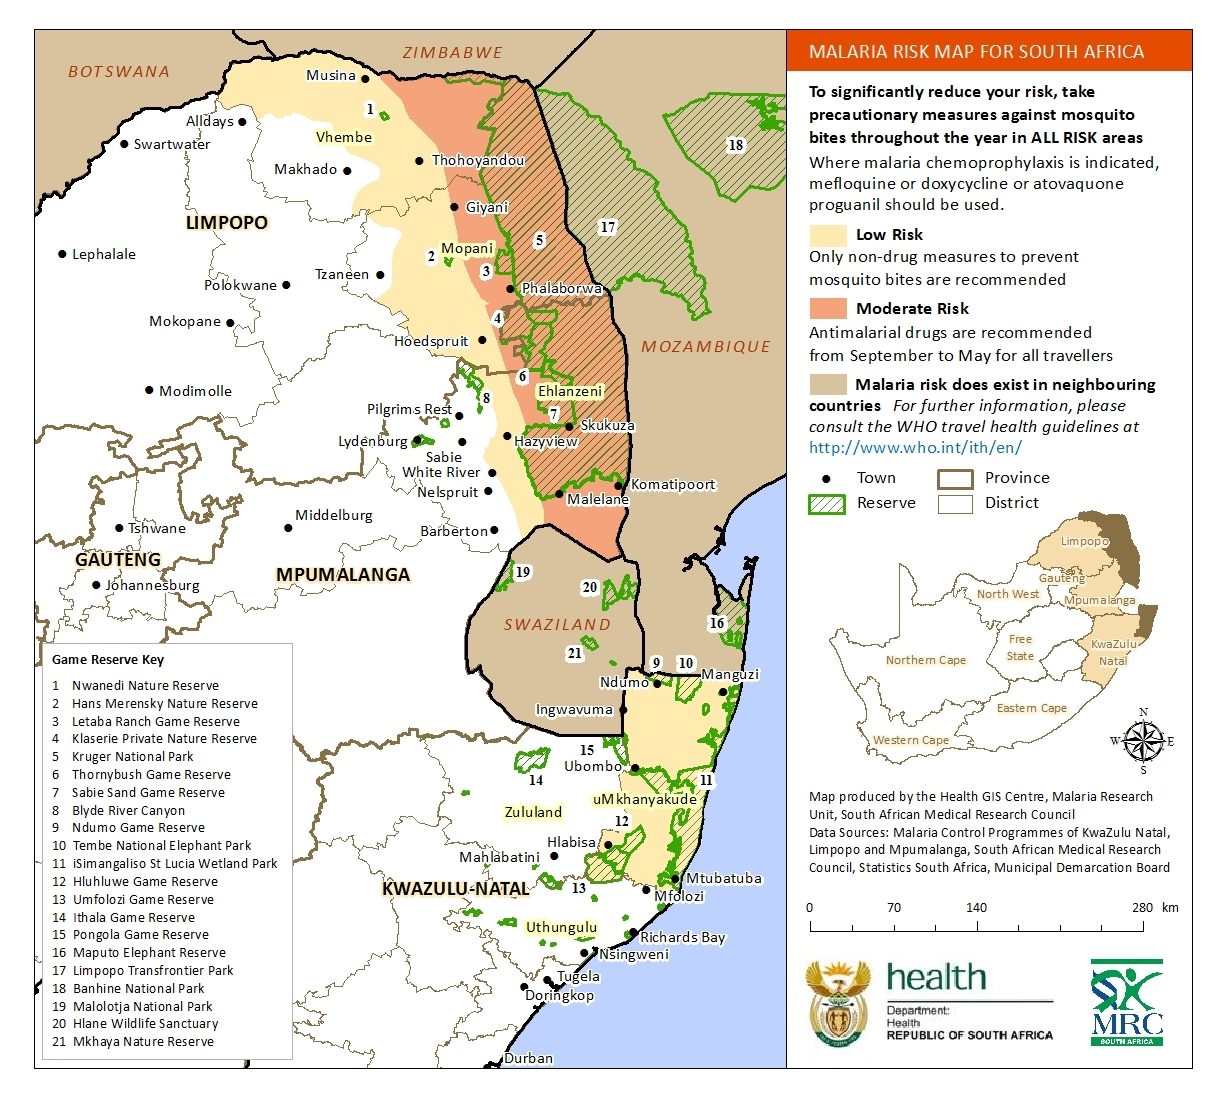 south africa malaria risk 2013